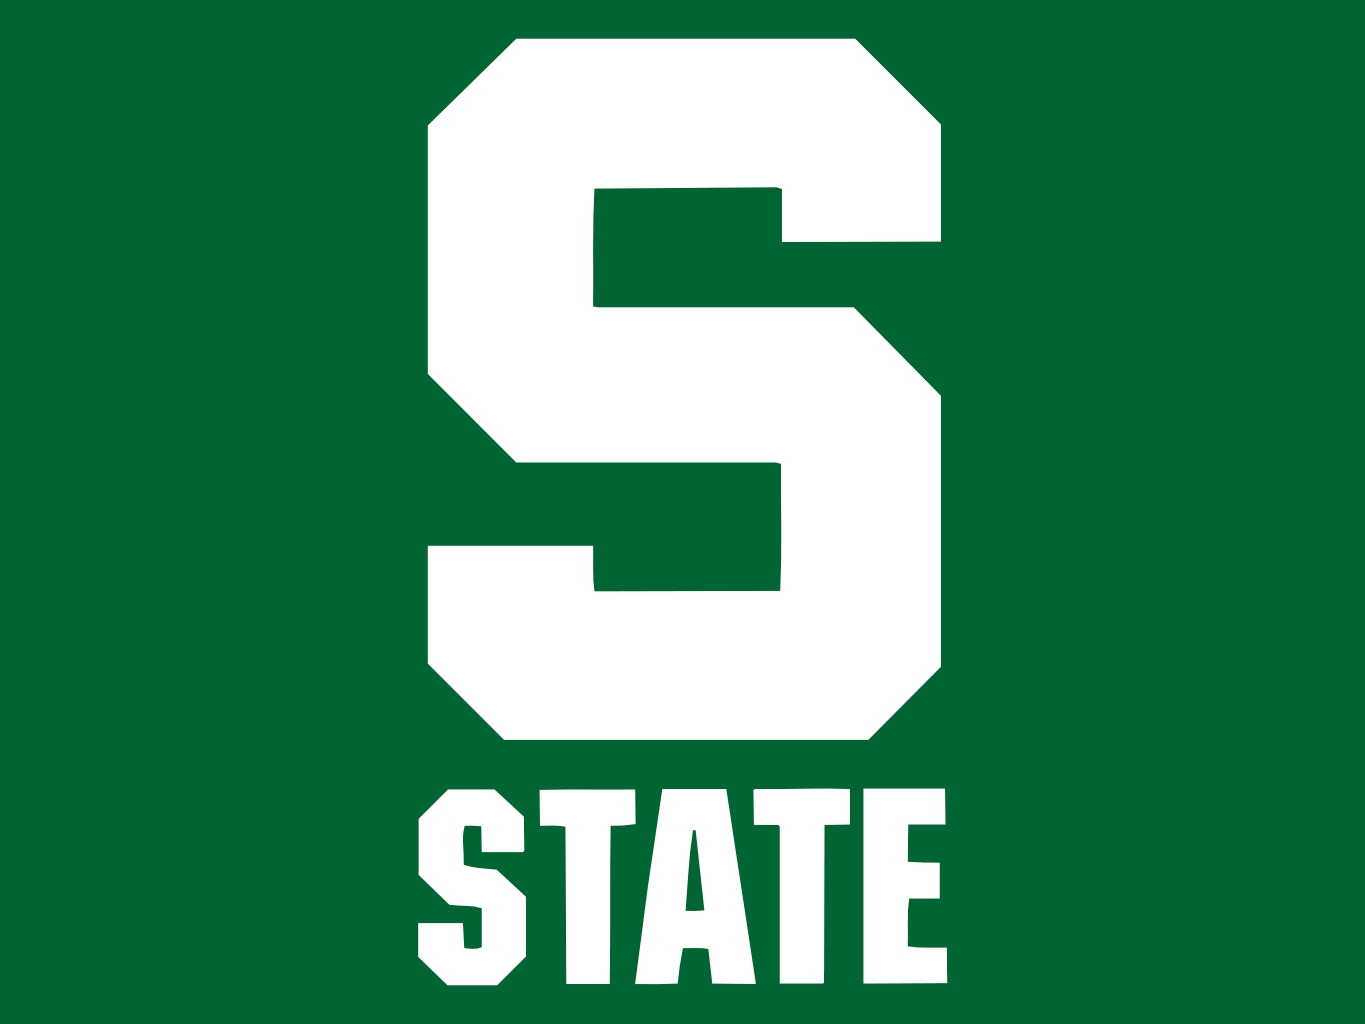 Michigan state university logo clipart picture freeuse stock MICHIGAN STATE S LOGO - ClipArt Best picture freeuse stock